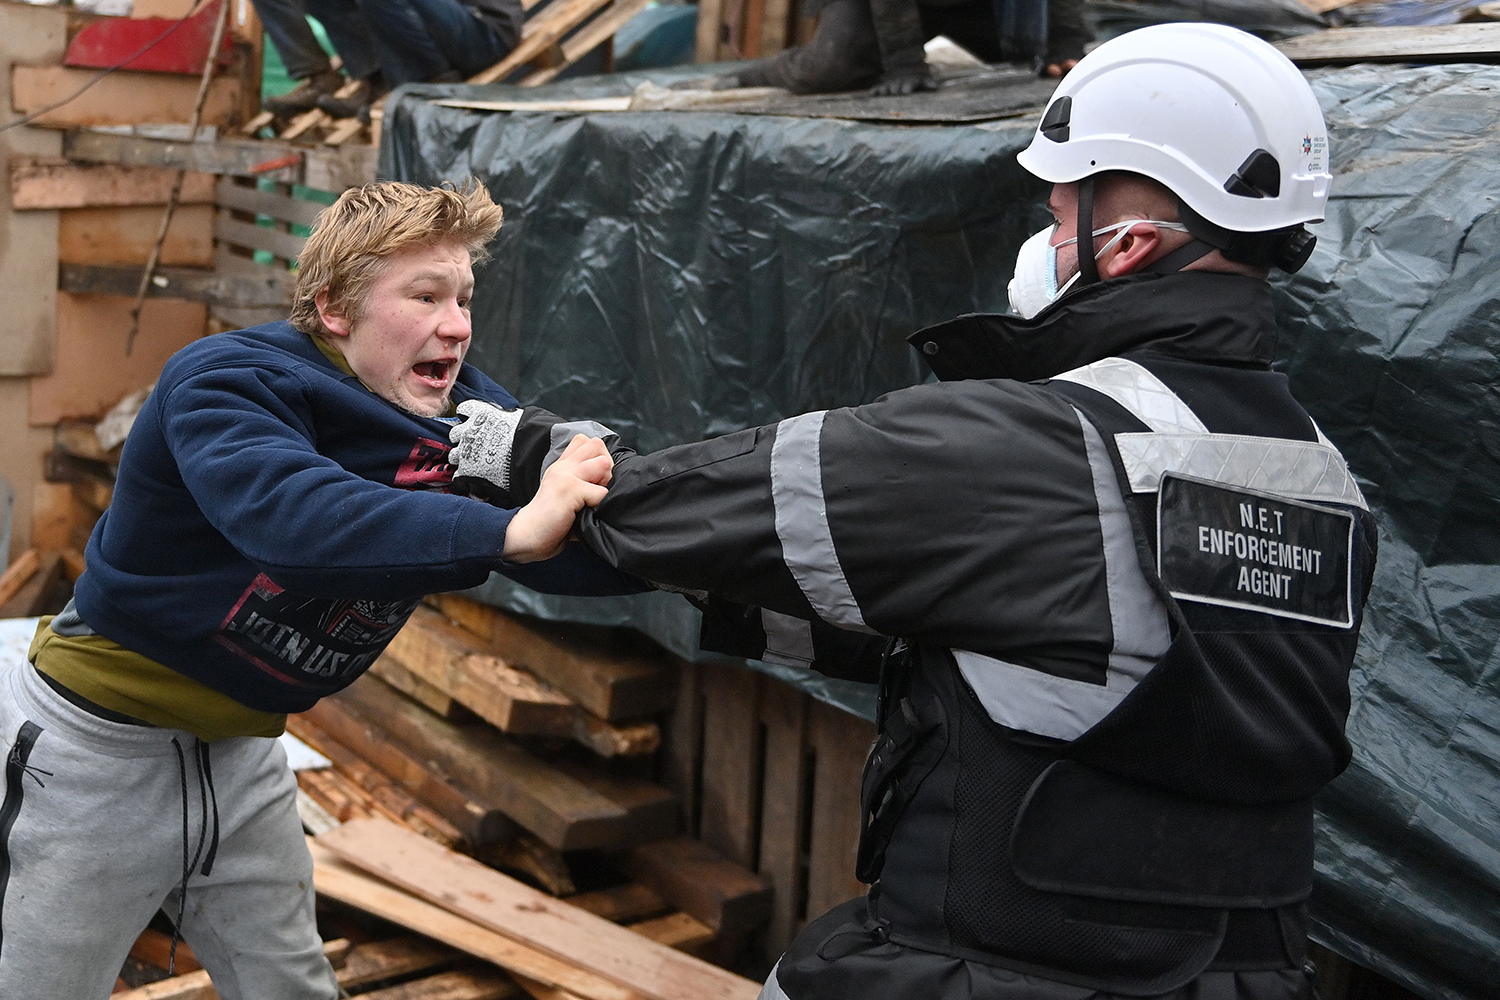 A bailiff tries to remove an activist from a protest camp against the HS2 high-speed rail line, near Euston train station in central London, on Jan. 27. JUSTIN TALLIS/AFP via Getty Images